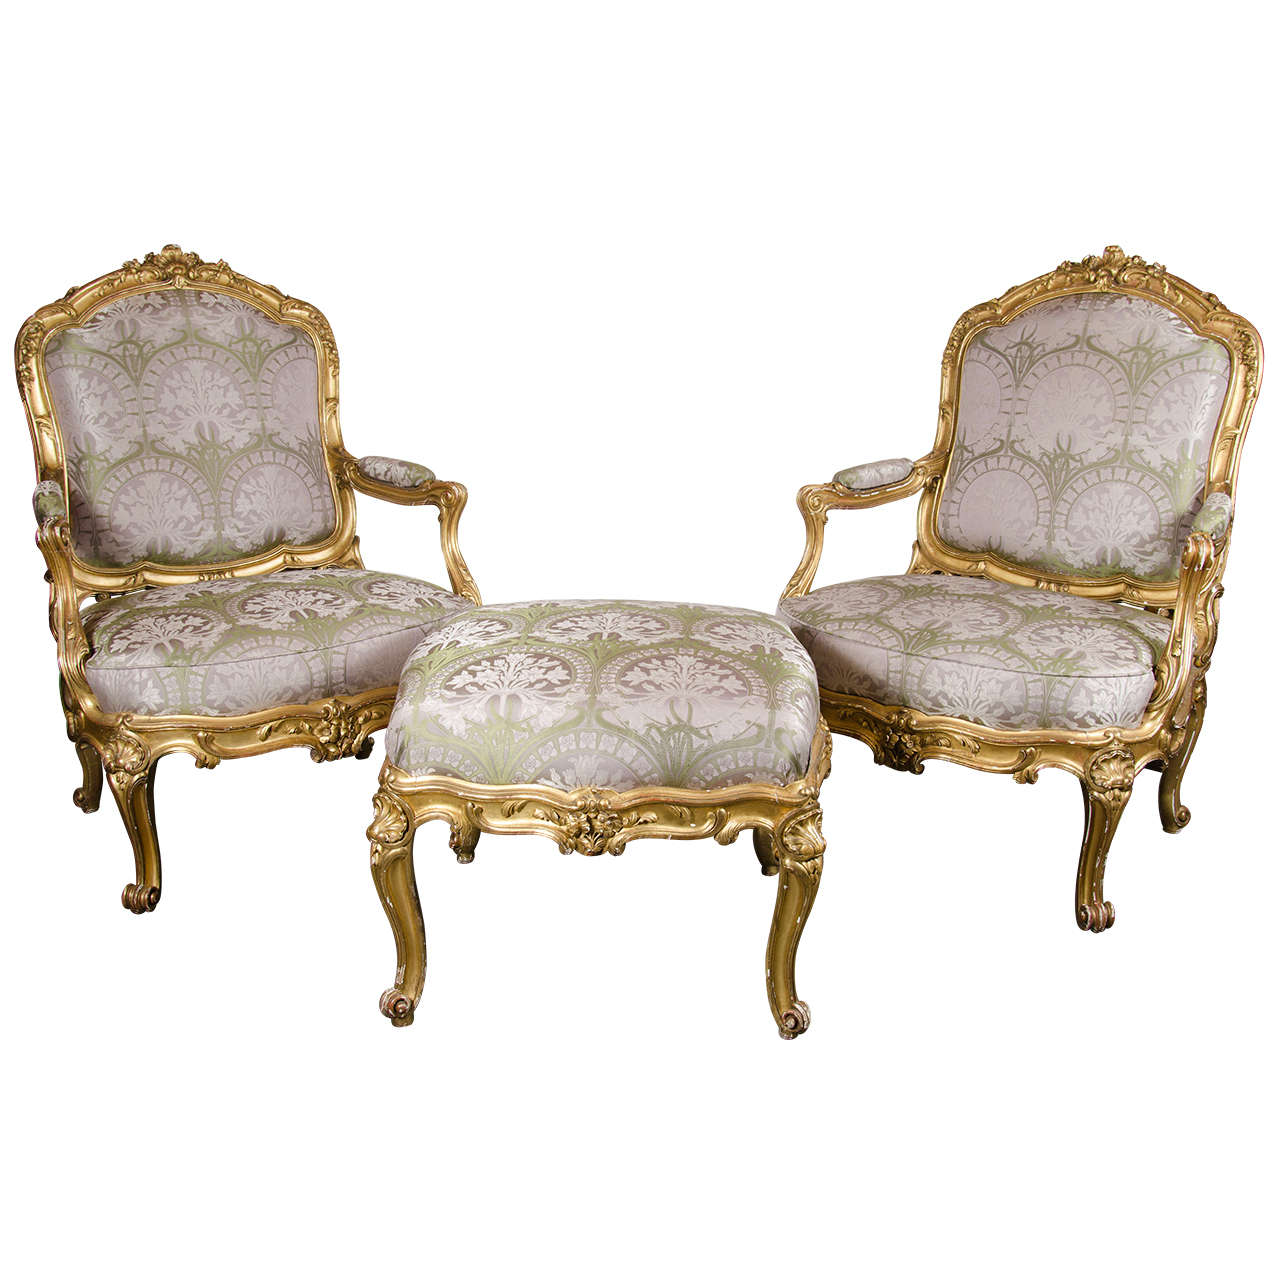 Antique bergere chair - Pair Of French Bergere Chairs And Ottoman In Gilded Wood And Satin Upholstery 1